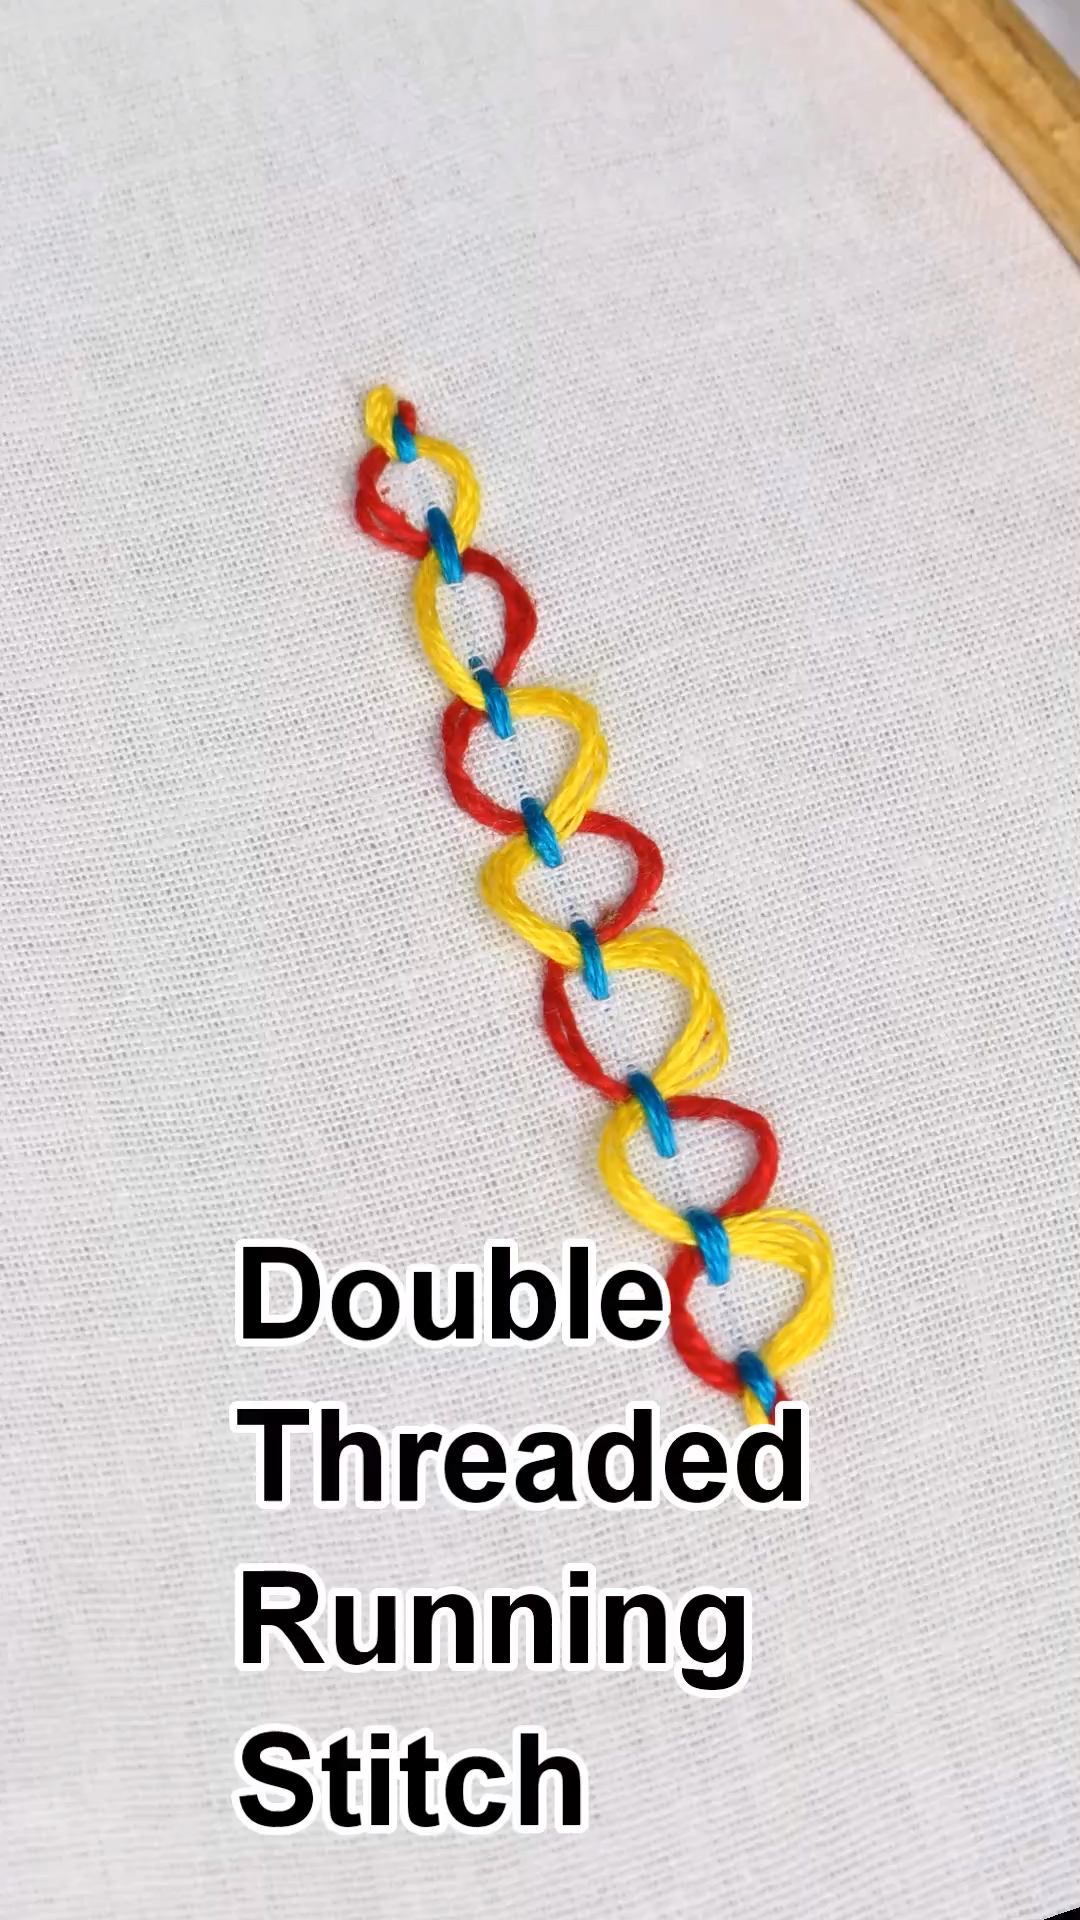 Double Threaded Running Stitch in Hand Embroidery (Step By Step & Video